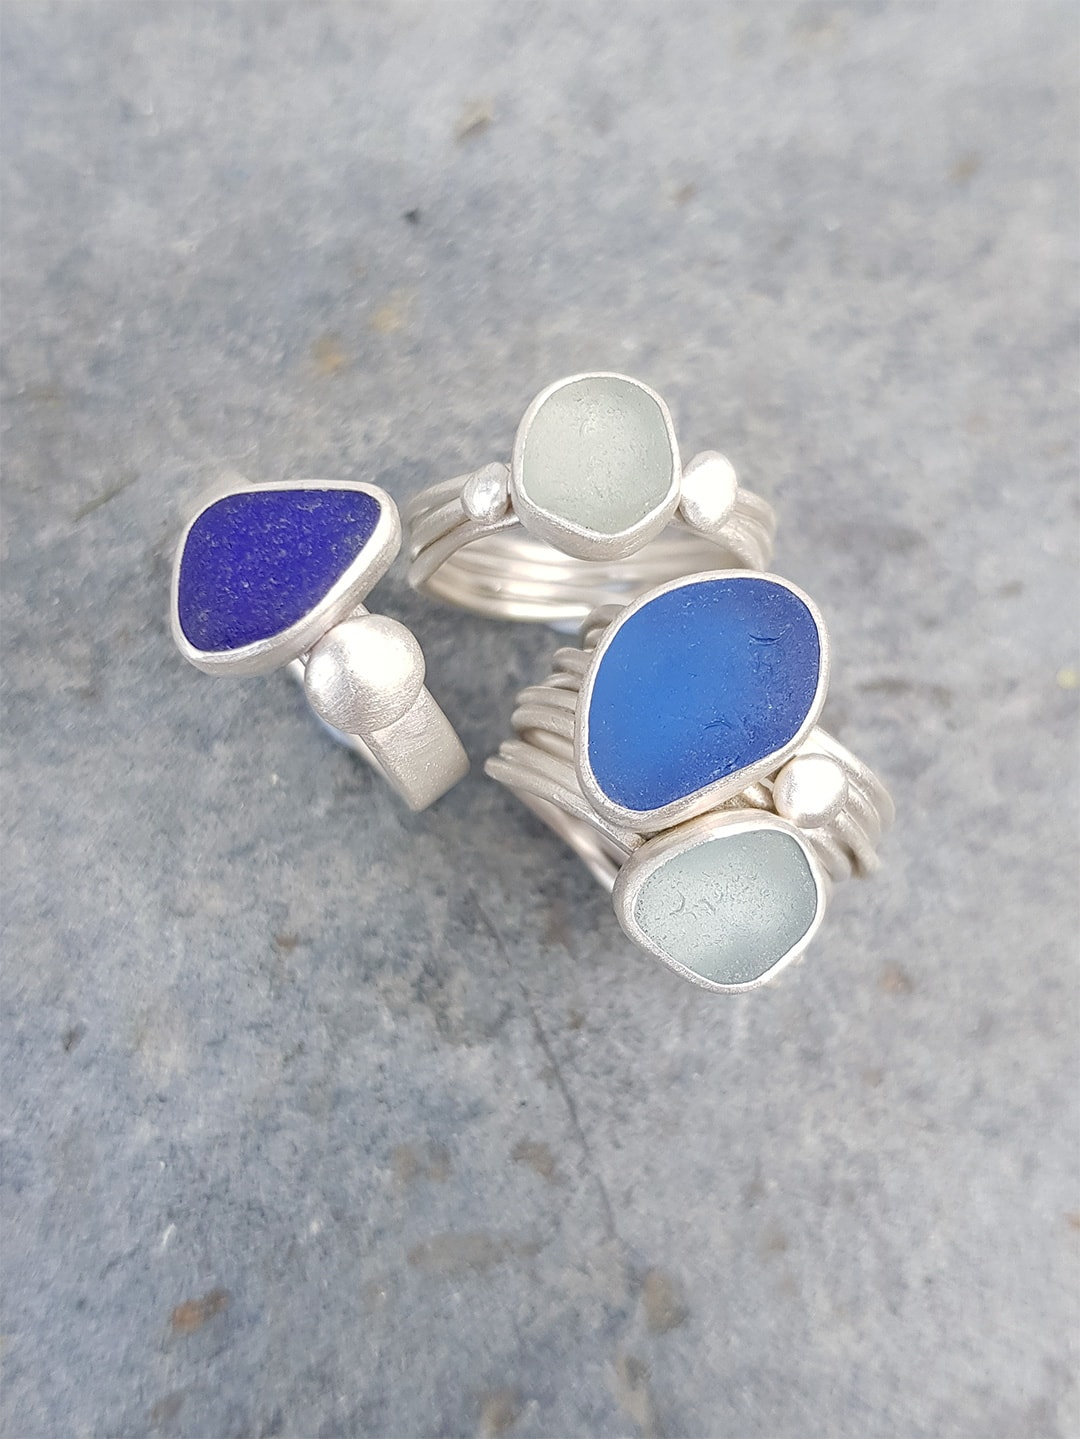 Blue sea glass and sterling silver rings